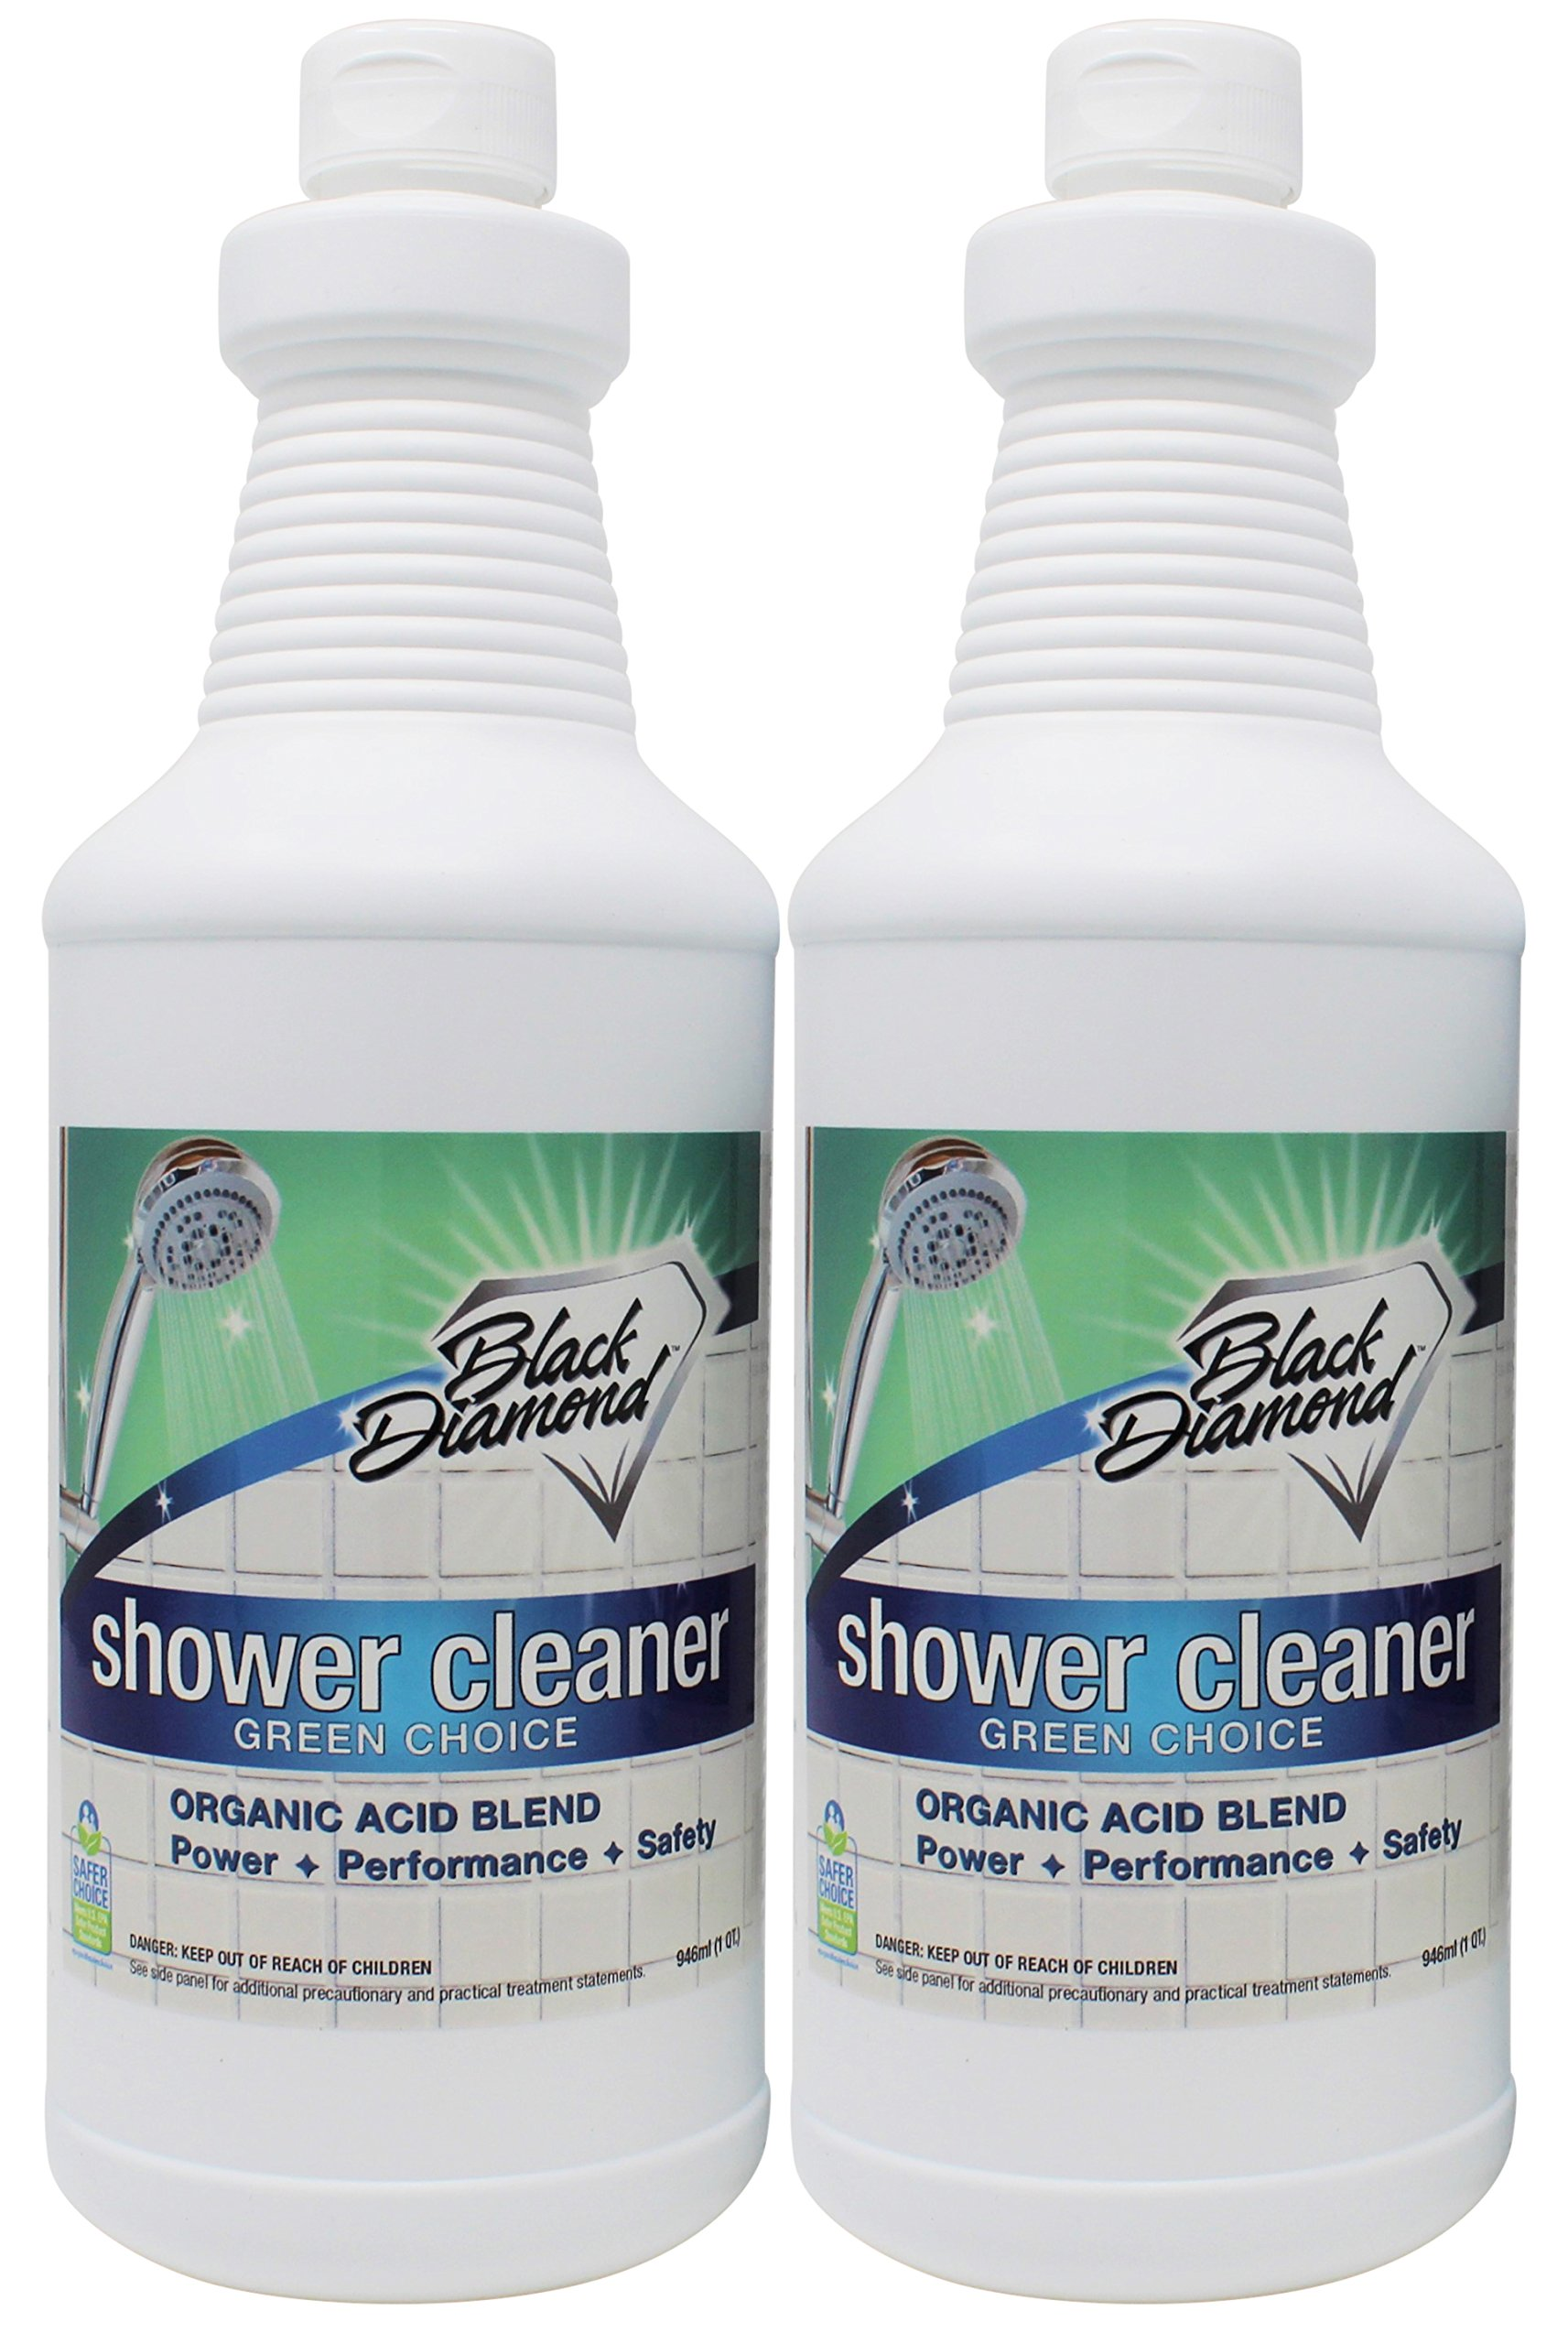 GREEN CHOICE Shower Tub Tile Glass Bathroom Cleaner- EPA Green Certified, Professional Strength, Removes Soap Scum Calcium and Hardwater Deposits. by Black Diamond Stoneworks